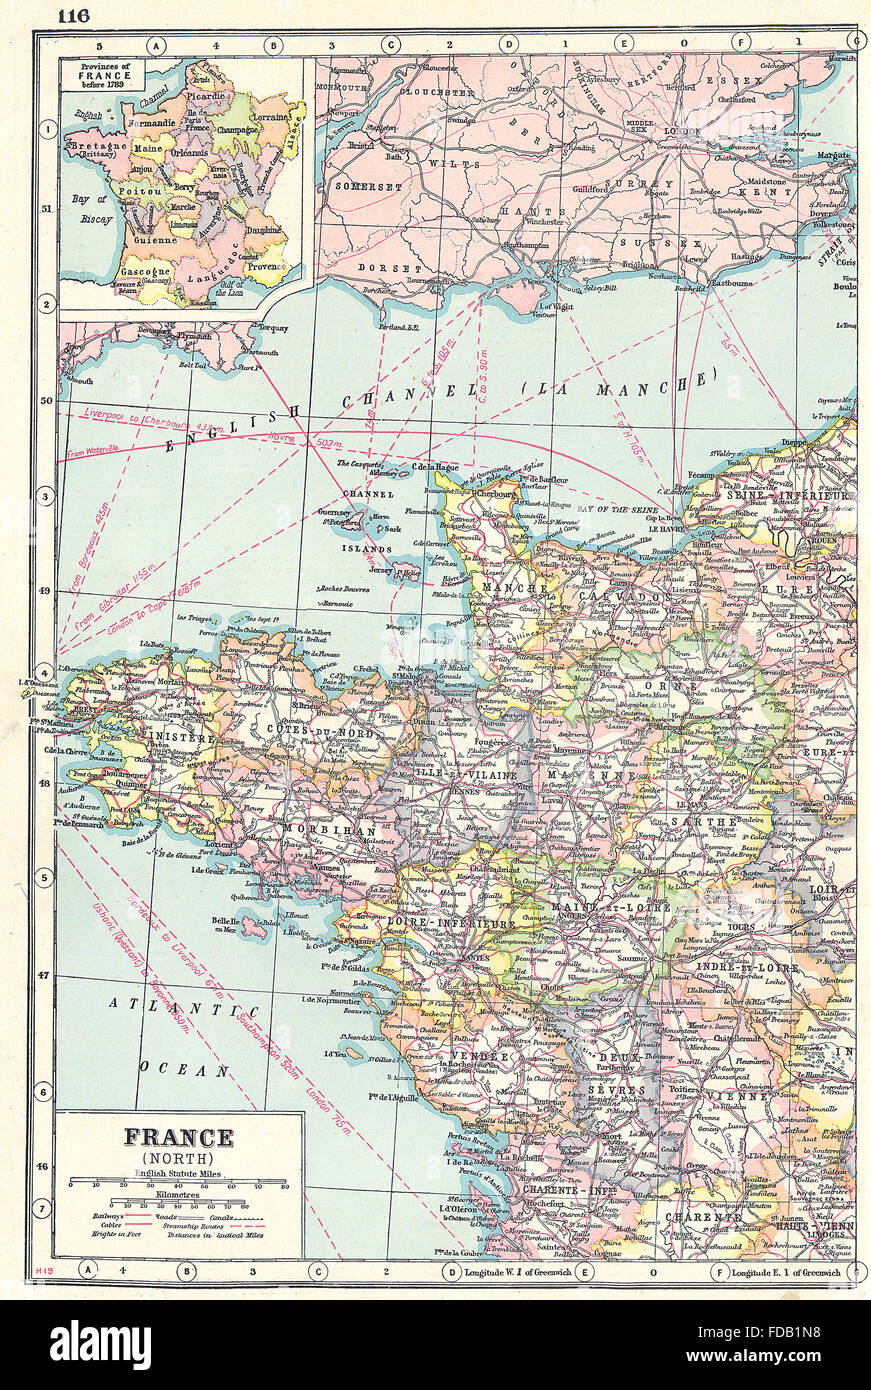 Map Of North West France.France North West Showing Departements Inset 1789 Provinces 1920